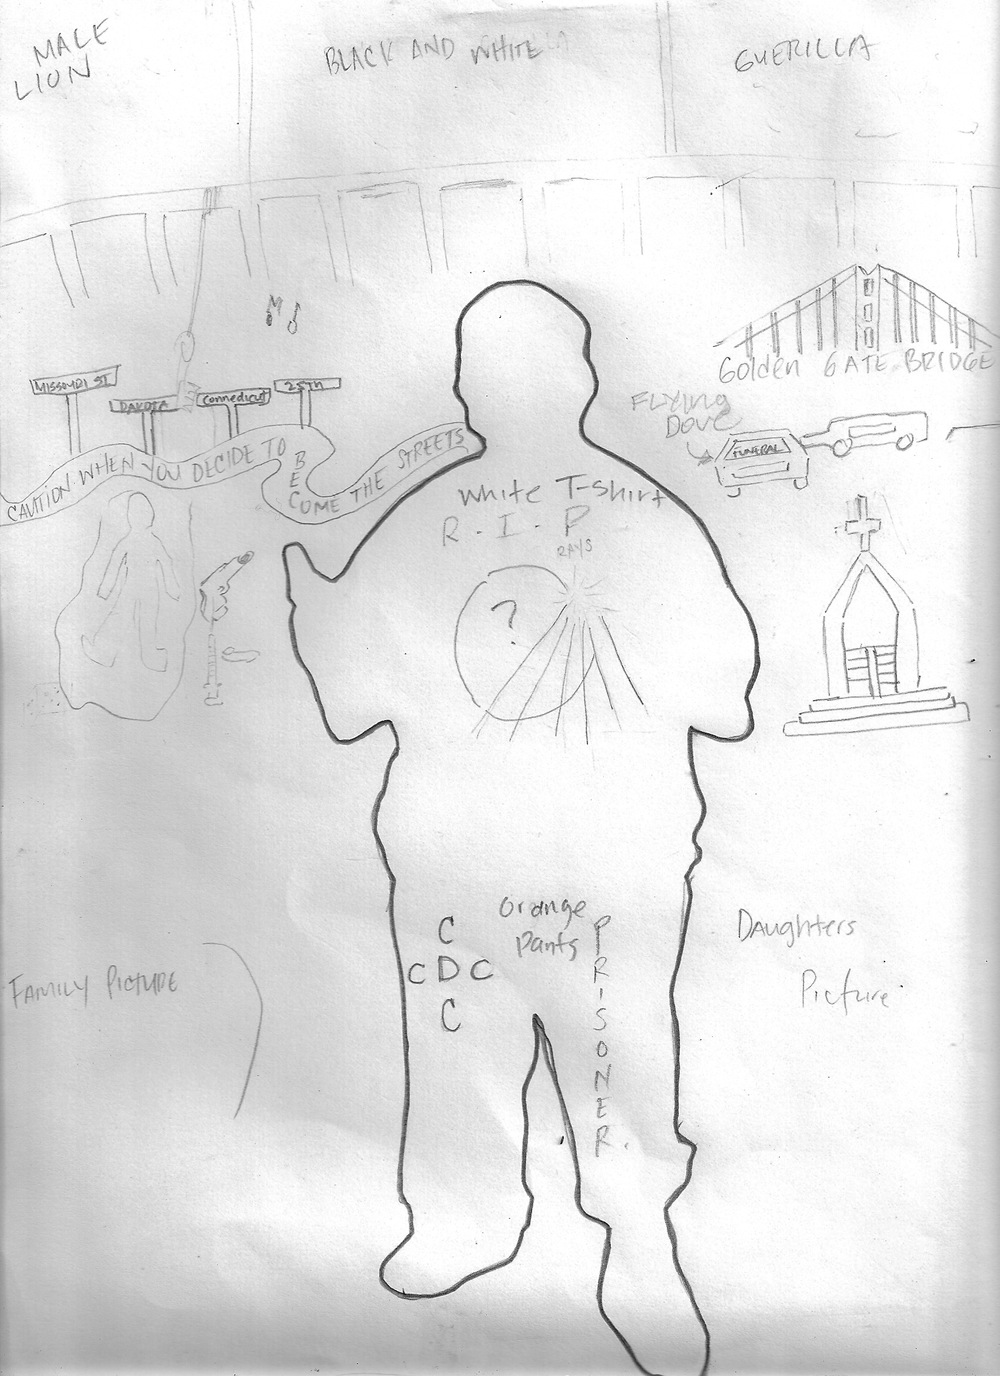 Draft sketch created by Ben for his portrait. The silhouette in the middle is based on a staged photograph that we created.